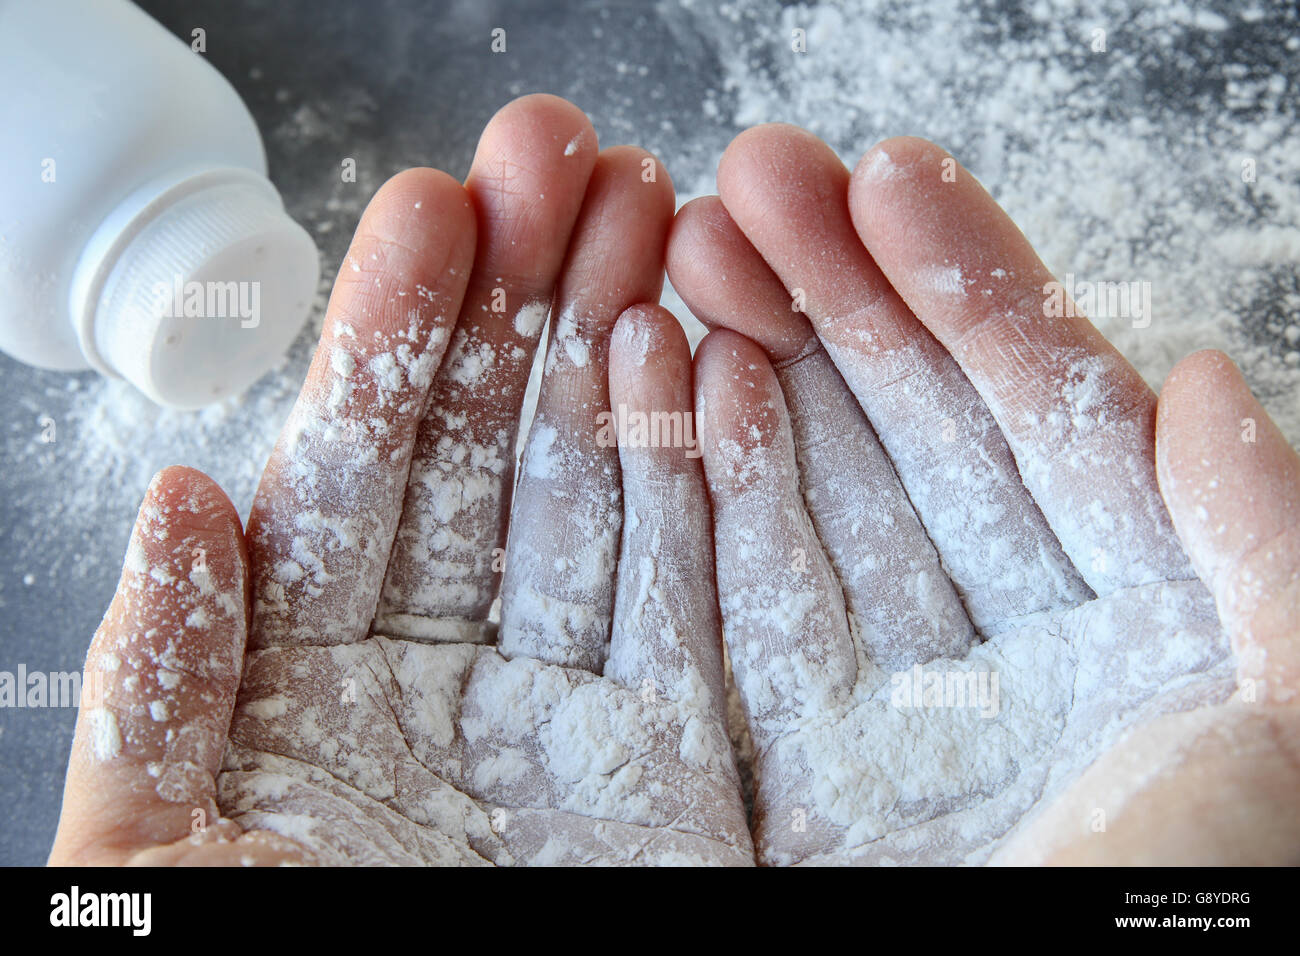 Talcum powder on two hands - Stock Image